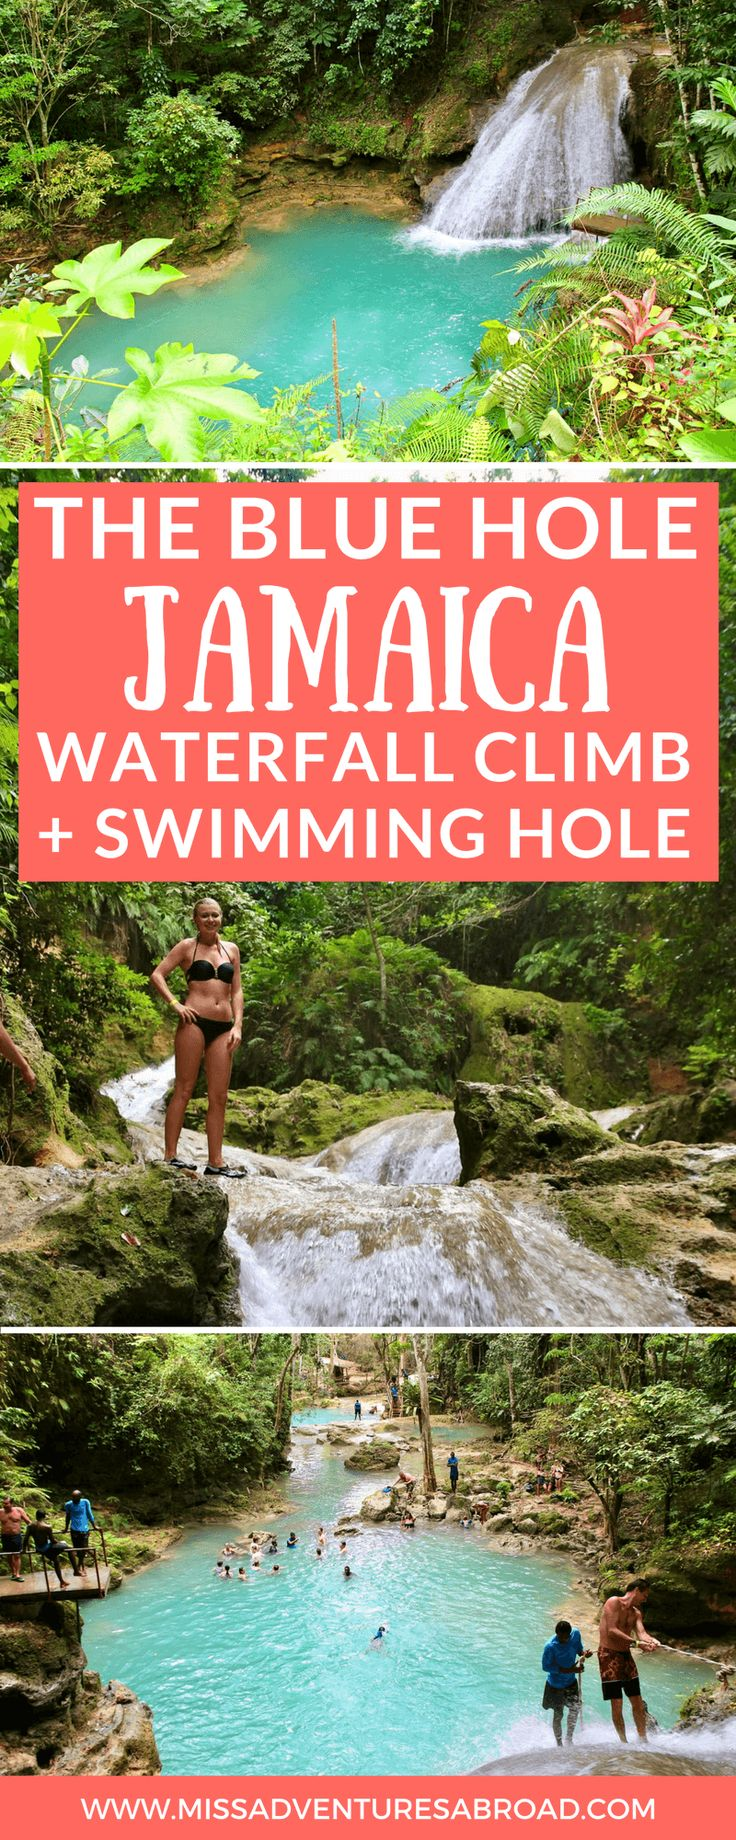 Why You Won't Want To Miss The Blue Hole: Jamaica's Hidden Gem · If you are planning a trip to Jamaica, be sure to put the Blue Hole on your travel itinerary! This swimming hole and waterfall are off-the-beaten-path and less tourist filled than Dunn's River Falls. A must for those who like waterfalls and adventure!  ✈✈✈ Here is your chance to win a Free International Roundtrip Ticket to anywhere in the world **GIVEAWAY** ✈✈✈ https://thedecisionmoment.com/free-roundtrip-tickets-giveaway/